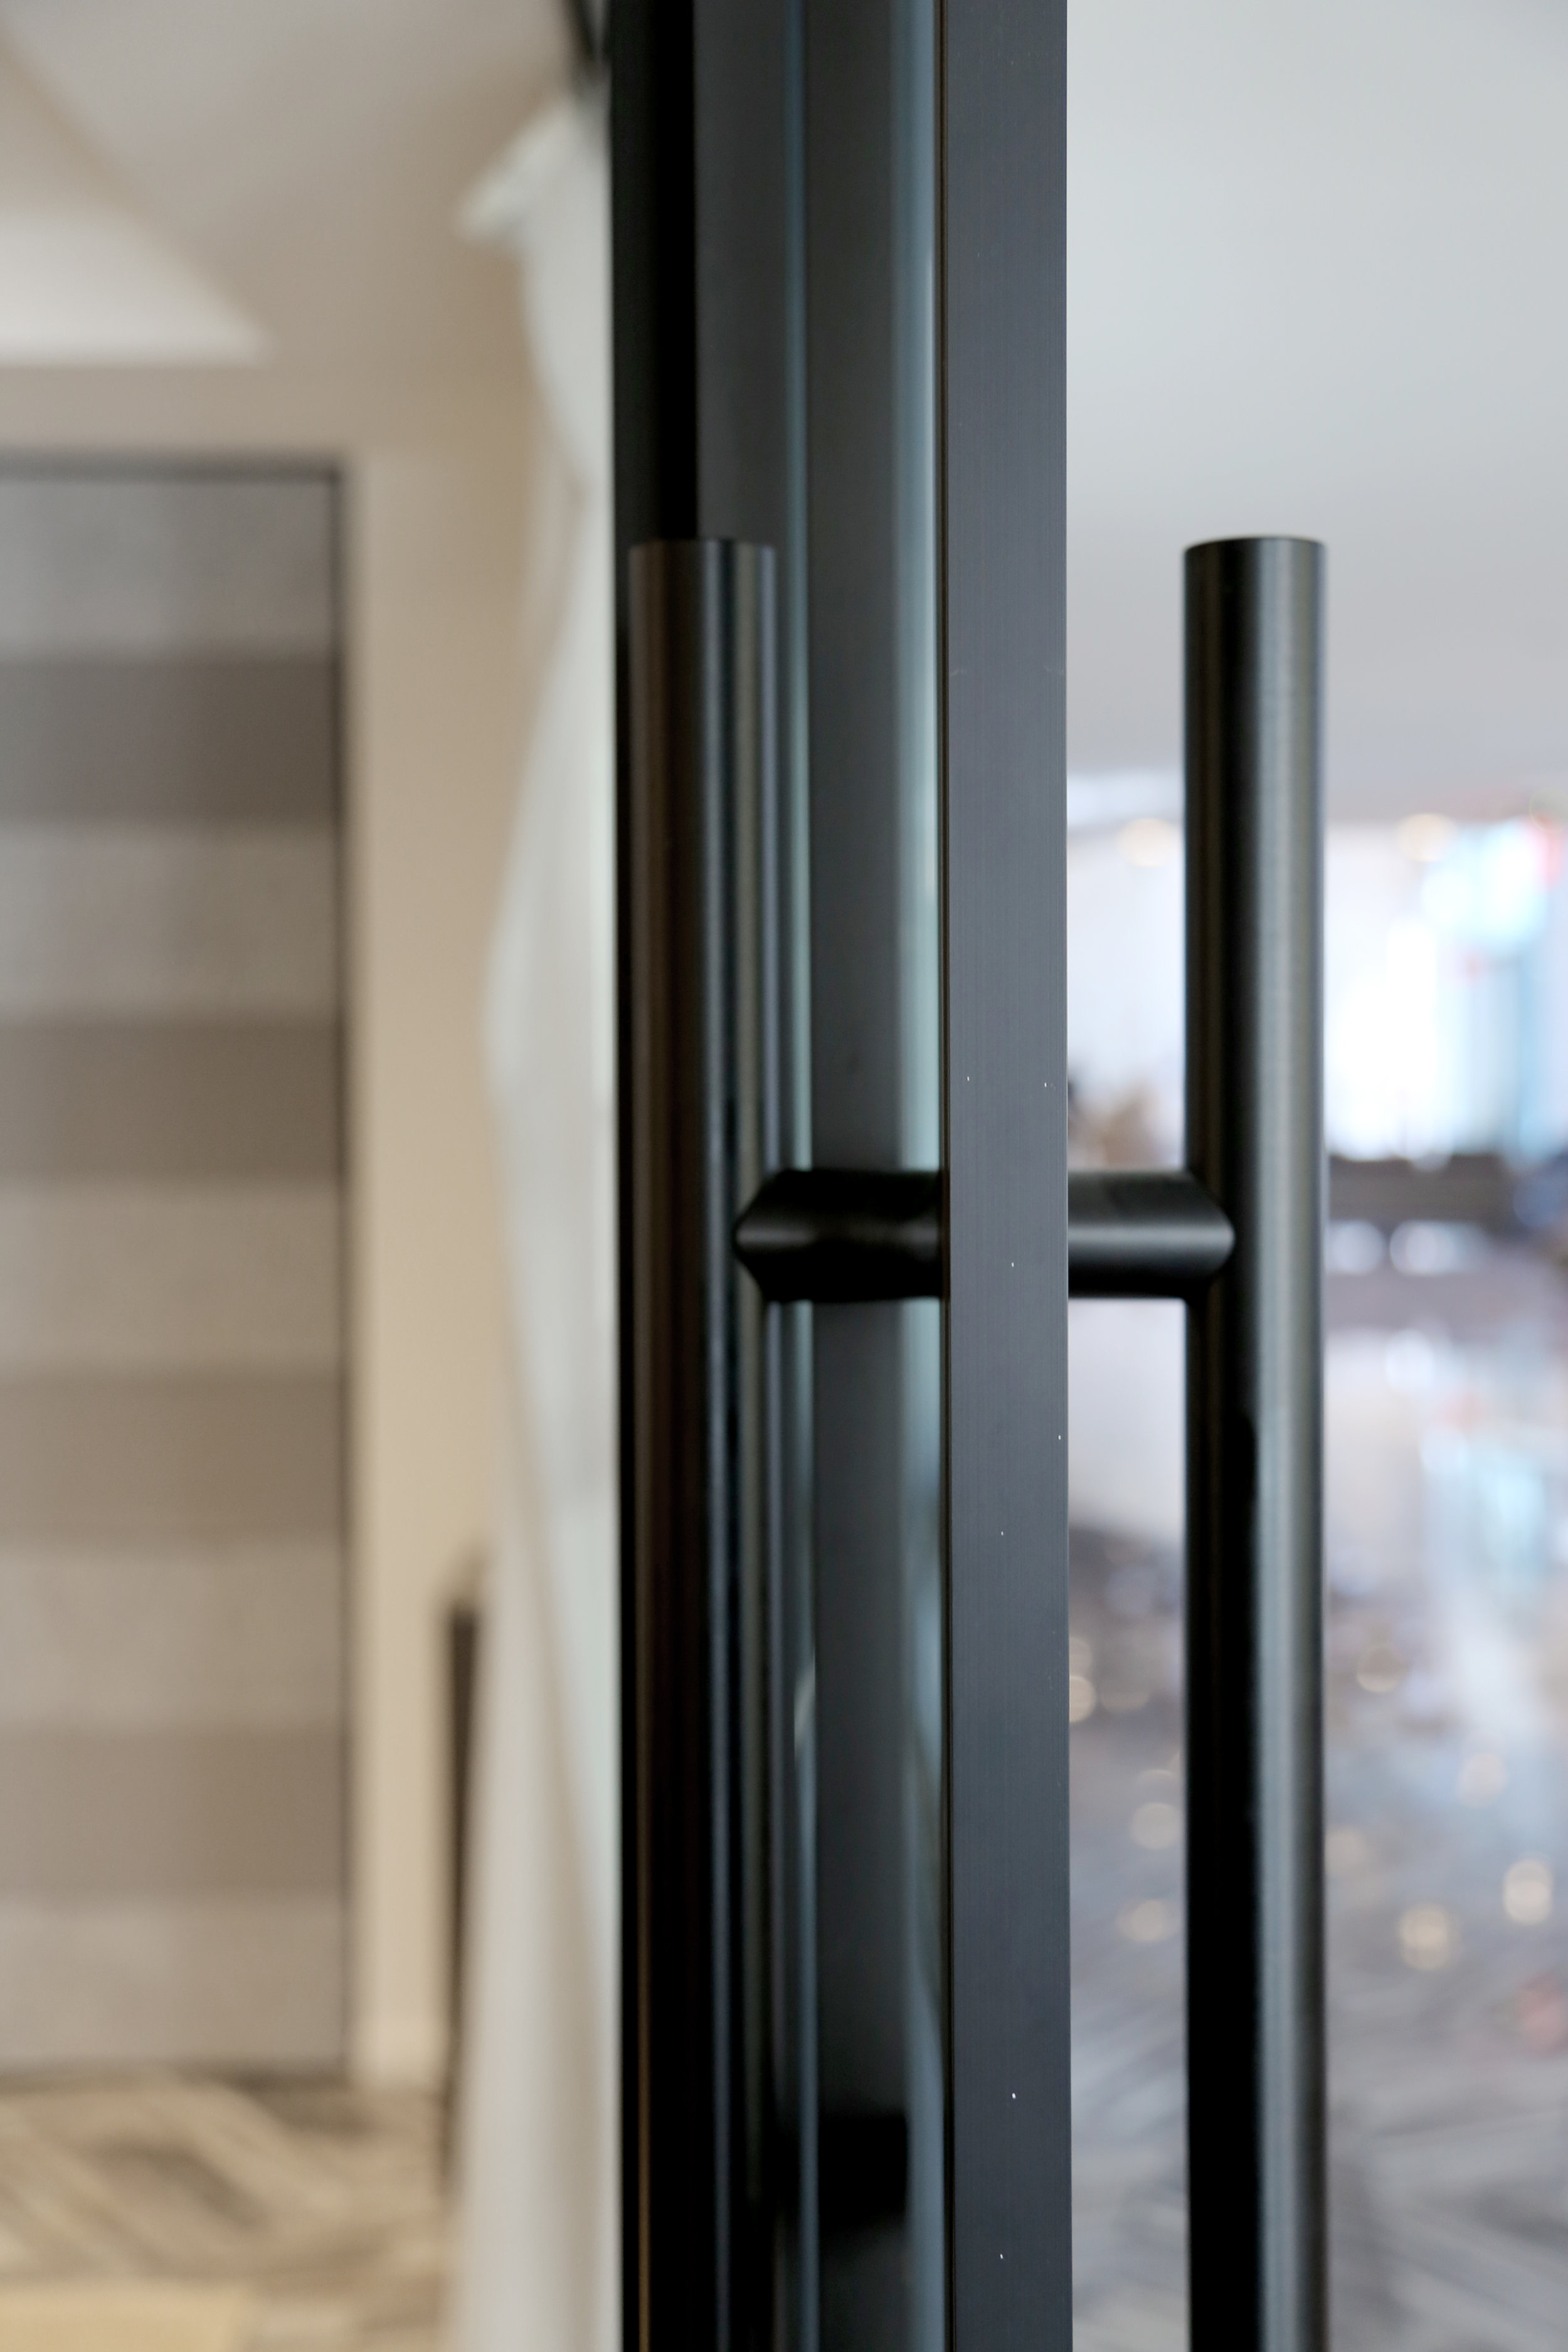 Telescoping Sliding Door Black Anodized Finish Ladder Pull - Spaceworks AI.jpg